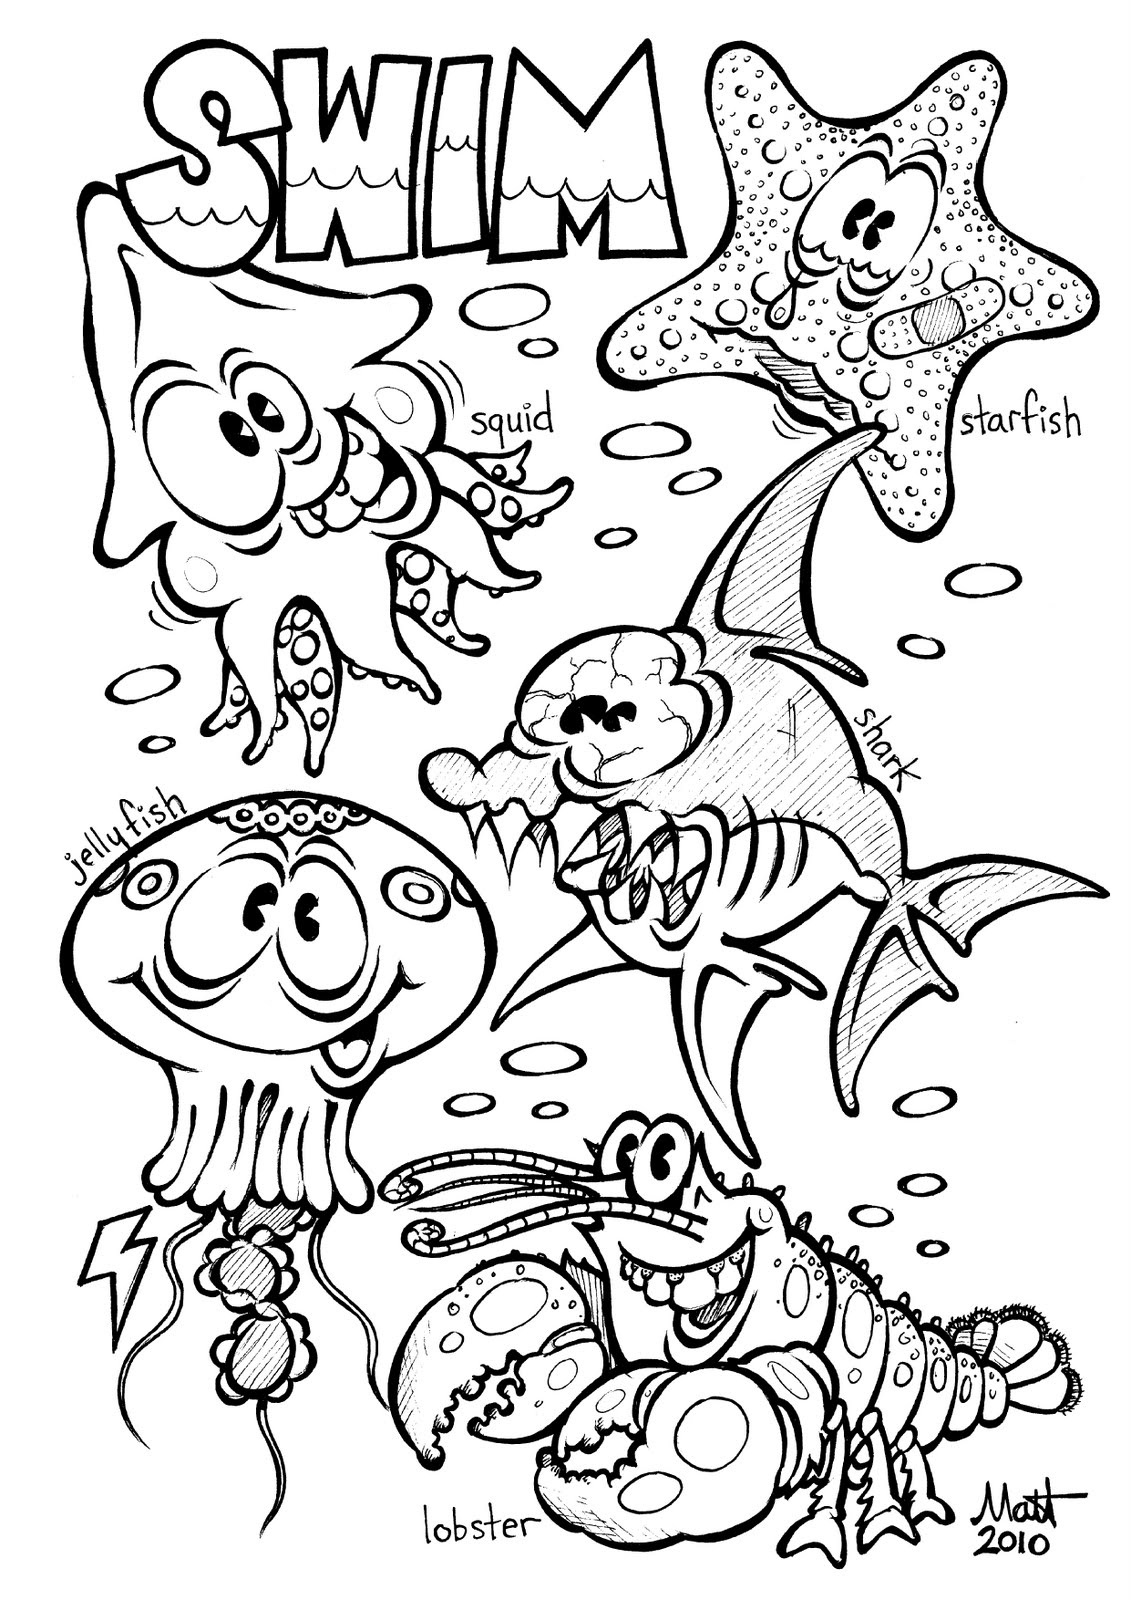 Online coloring pages for children to print - Ocean Animal Coloring Pages